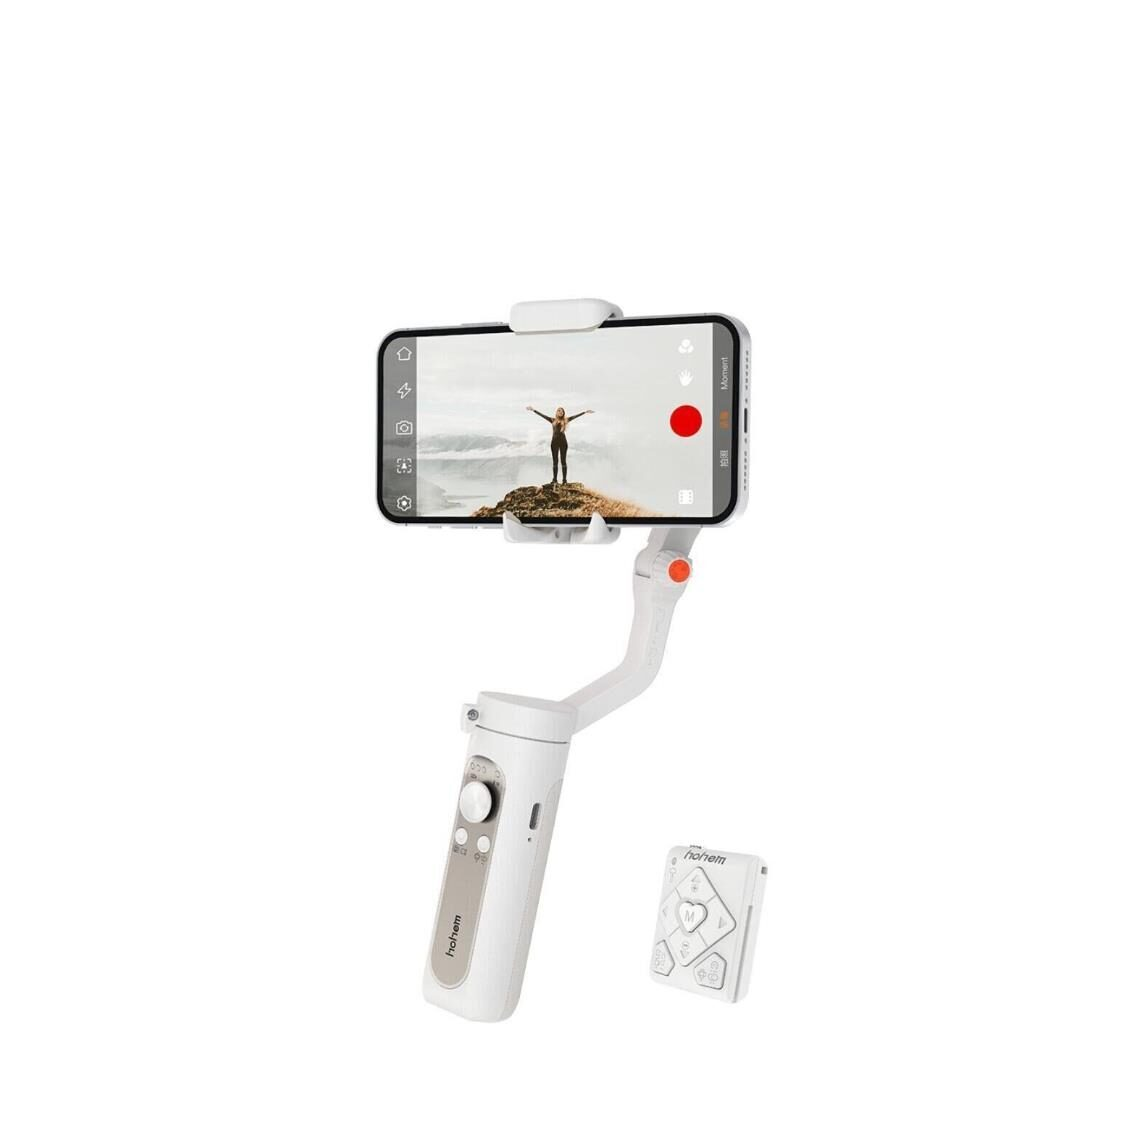 Hohem iSteady X2 3-Axis Smartphone Gimbal Stabilizer - White